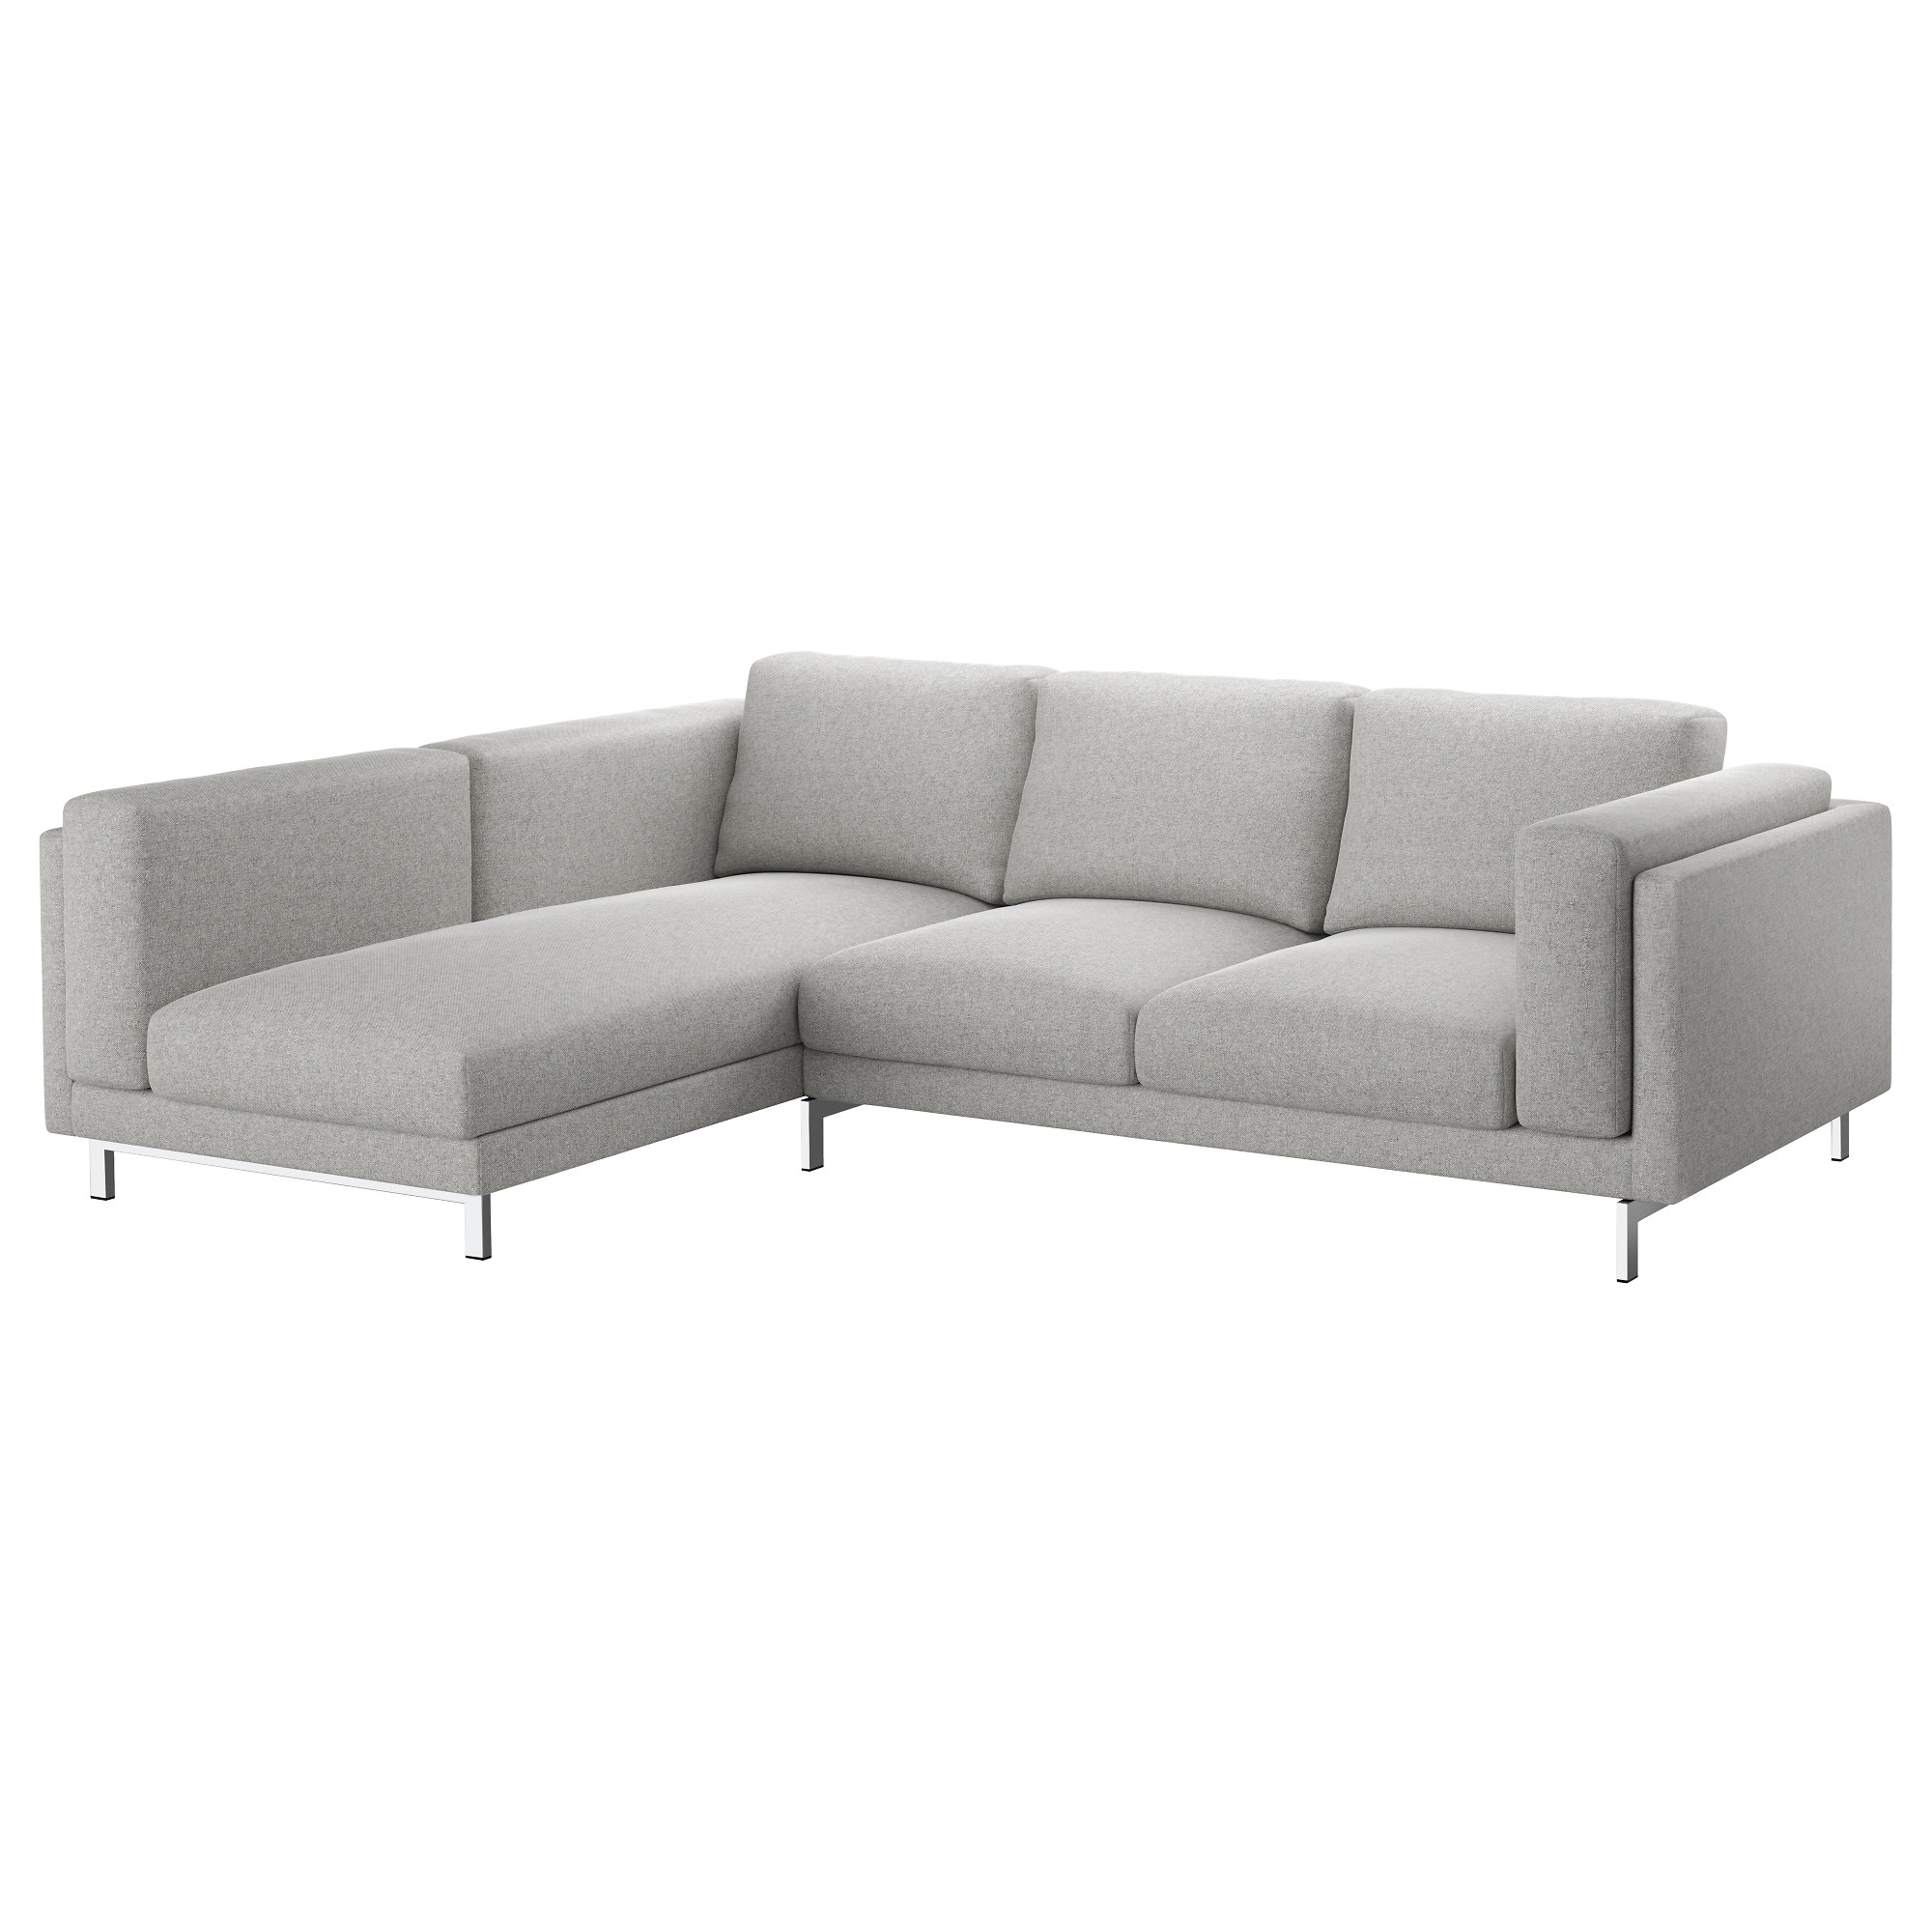 Nockeby Sofa – With Chaise, Left/tallmyra White/black, Chrome Plated Throughout Sectional Sofas At Ikea (View 2 of 10)